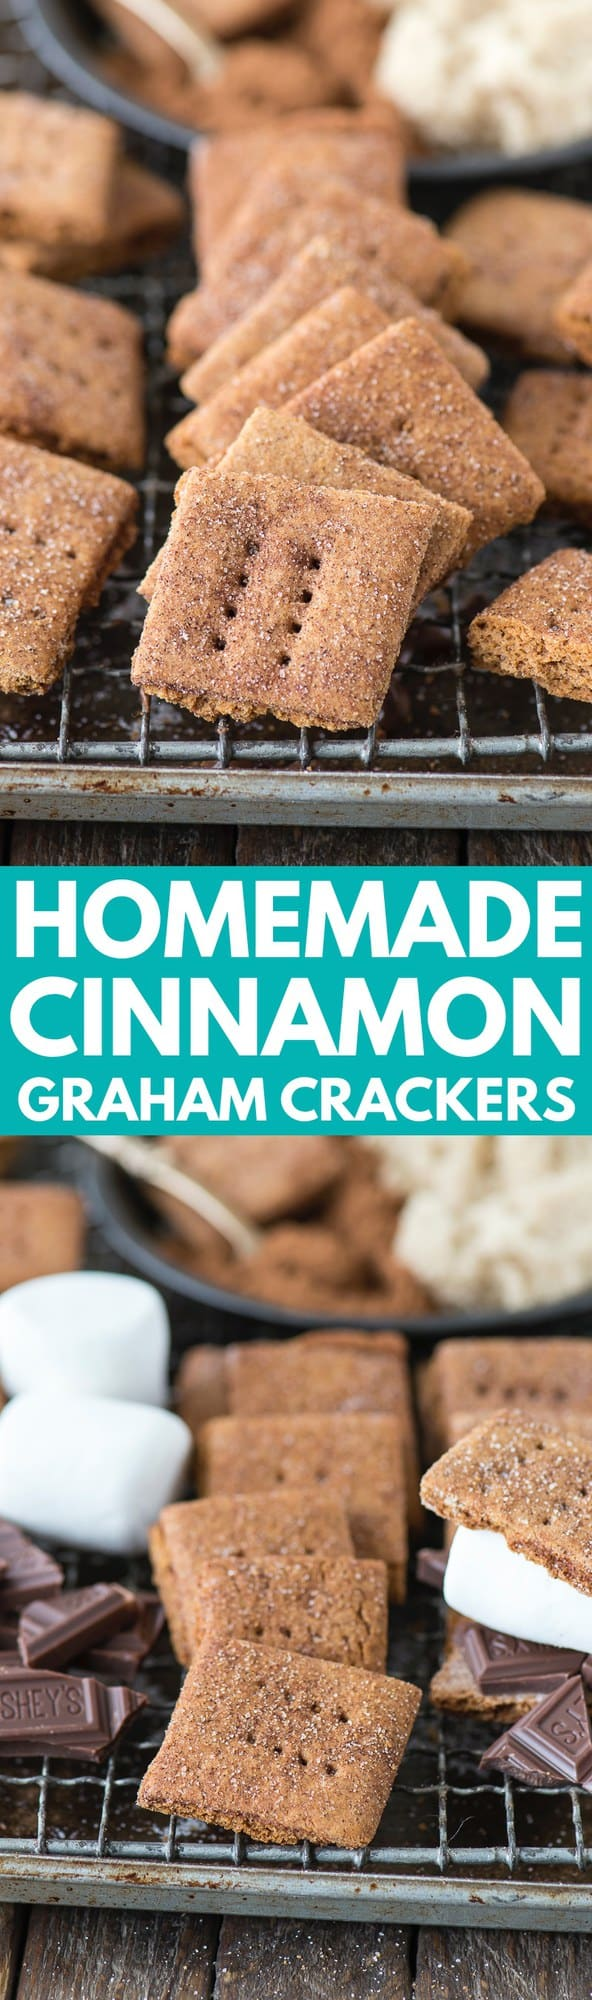 Homemade brown sugar cinnamon graham crackers that are packed with flavor and give store bought grahams a run for their money! Easily make these gluten free with GF all purpose flour!